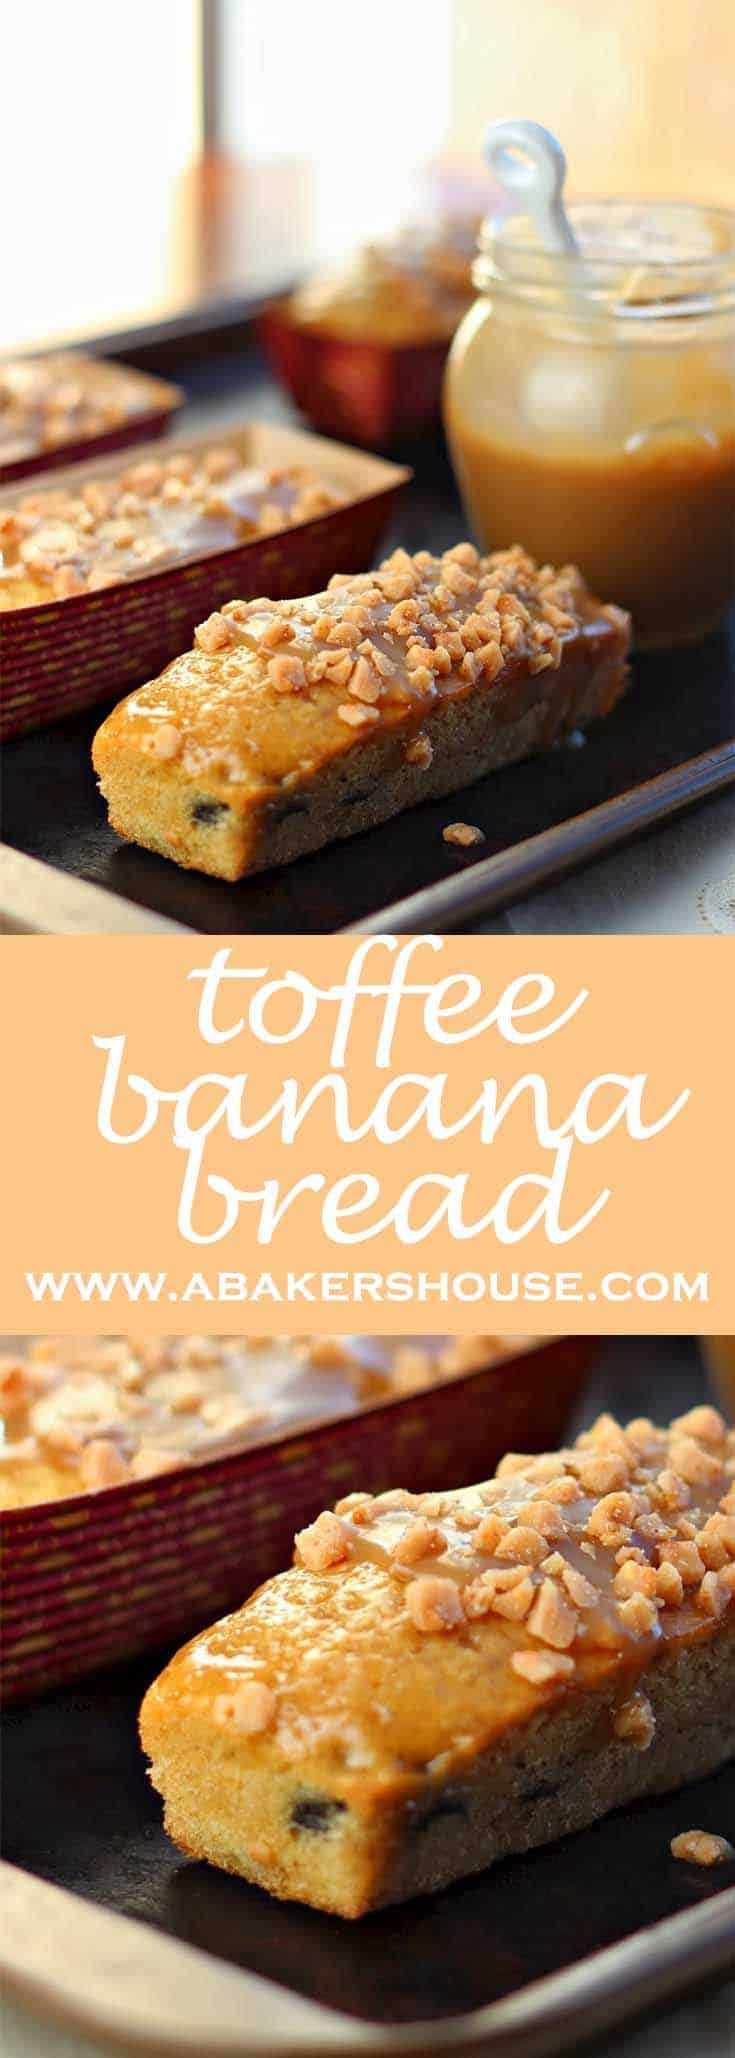 This mini loaf of toffee banana bread is a twist on a British classic. Added toffee bits and a caramel sauce make this a winner for holiday and Christmas gift from the kitchen. #abakershouse #bananabread #toffeesauce